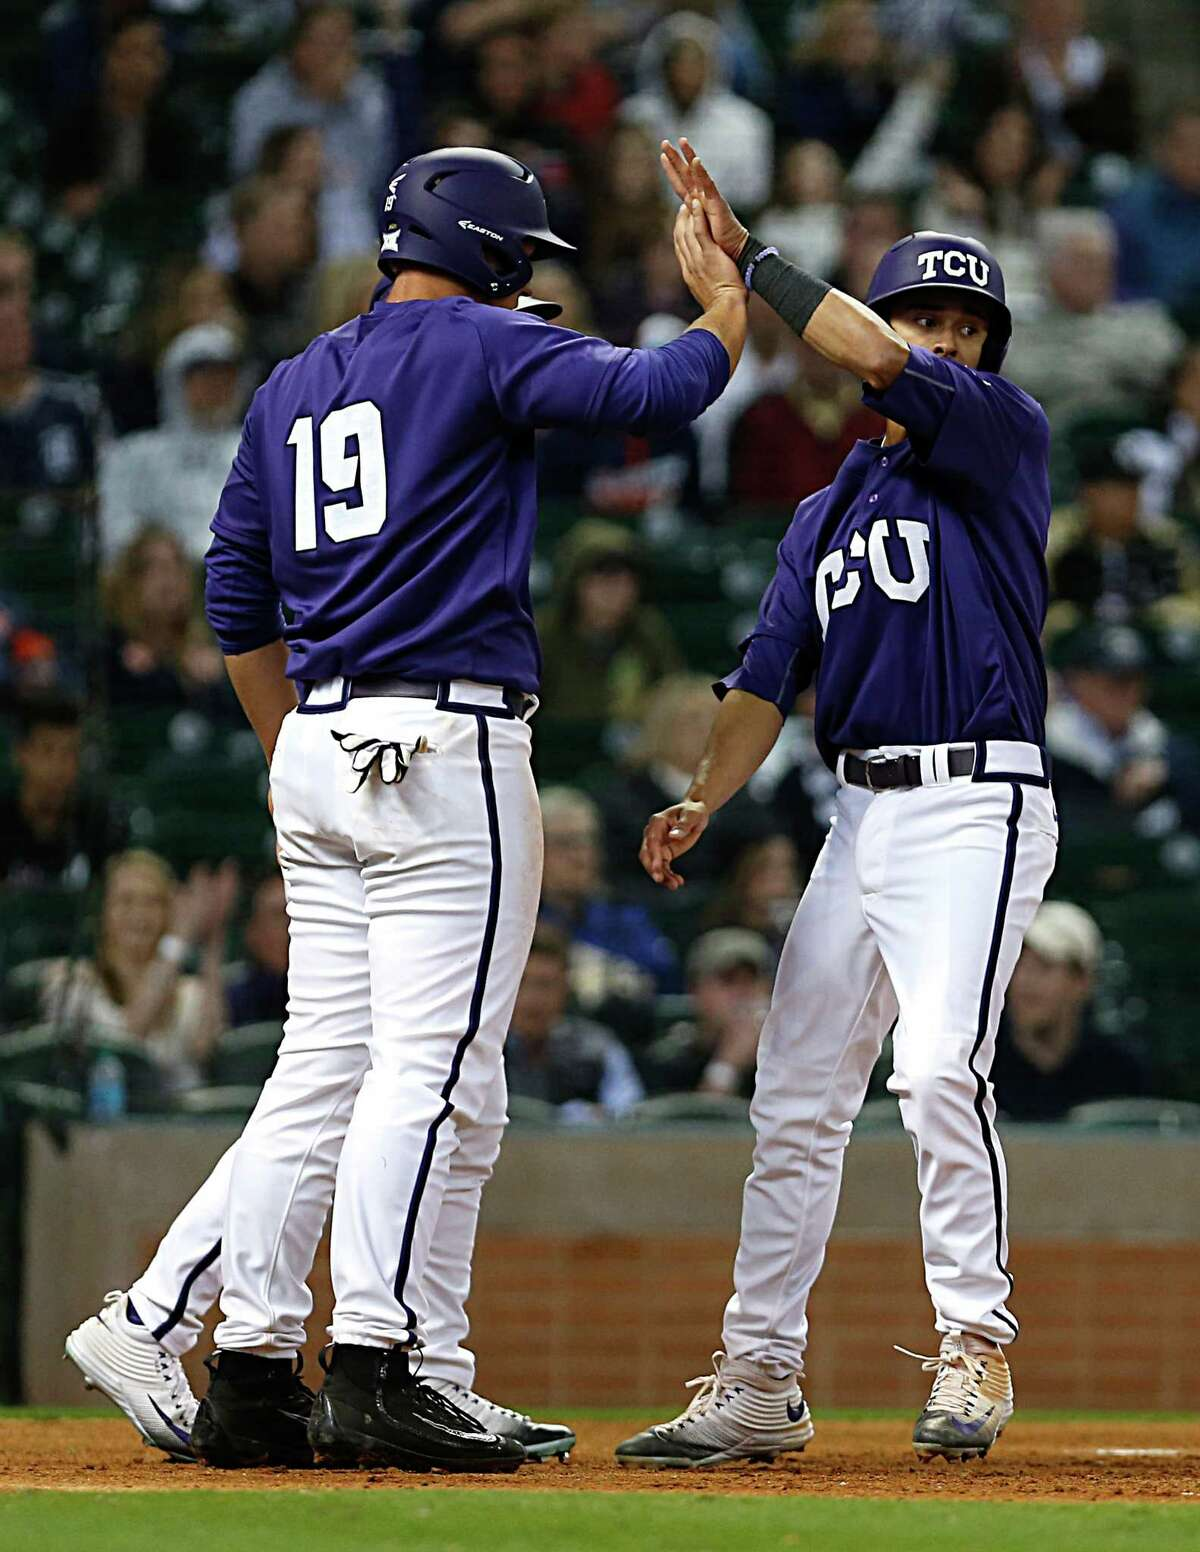 TCU pitcher Luken Baker left, high fives teammate Elliott Barzilli right, after the pair scored on a 2 run double by TCU outfielder Dane Steinhagen during second inning of the 2016 Shriners Hospitals for Children College Classic baseball game at Minute Maid Park Saturday, Feb. 27, 2016, in Houston.